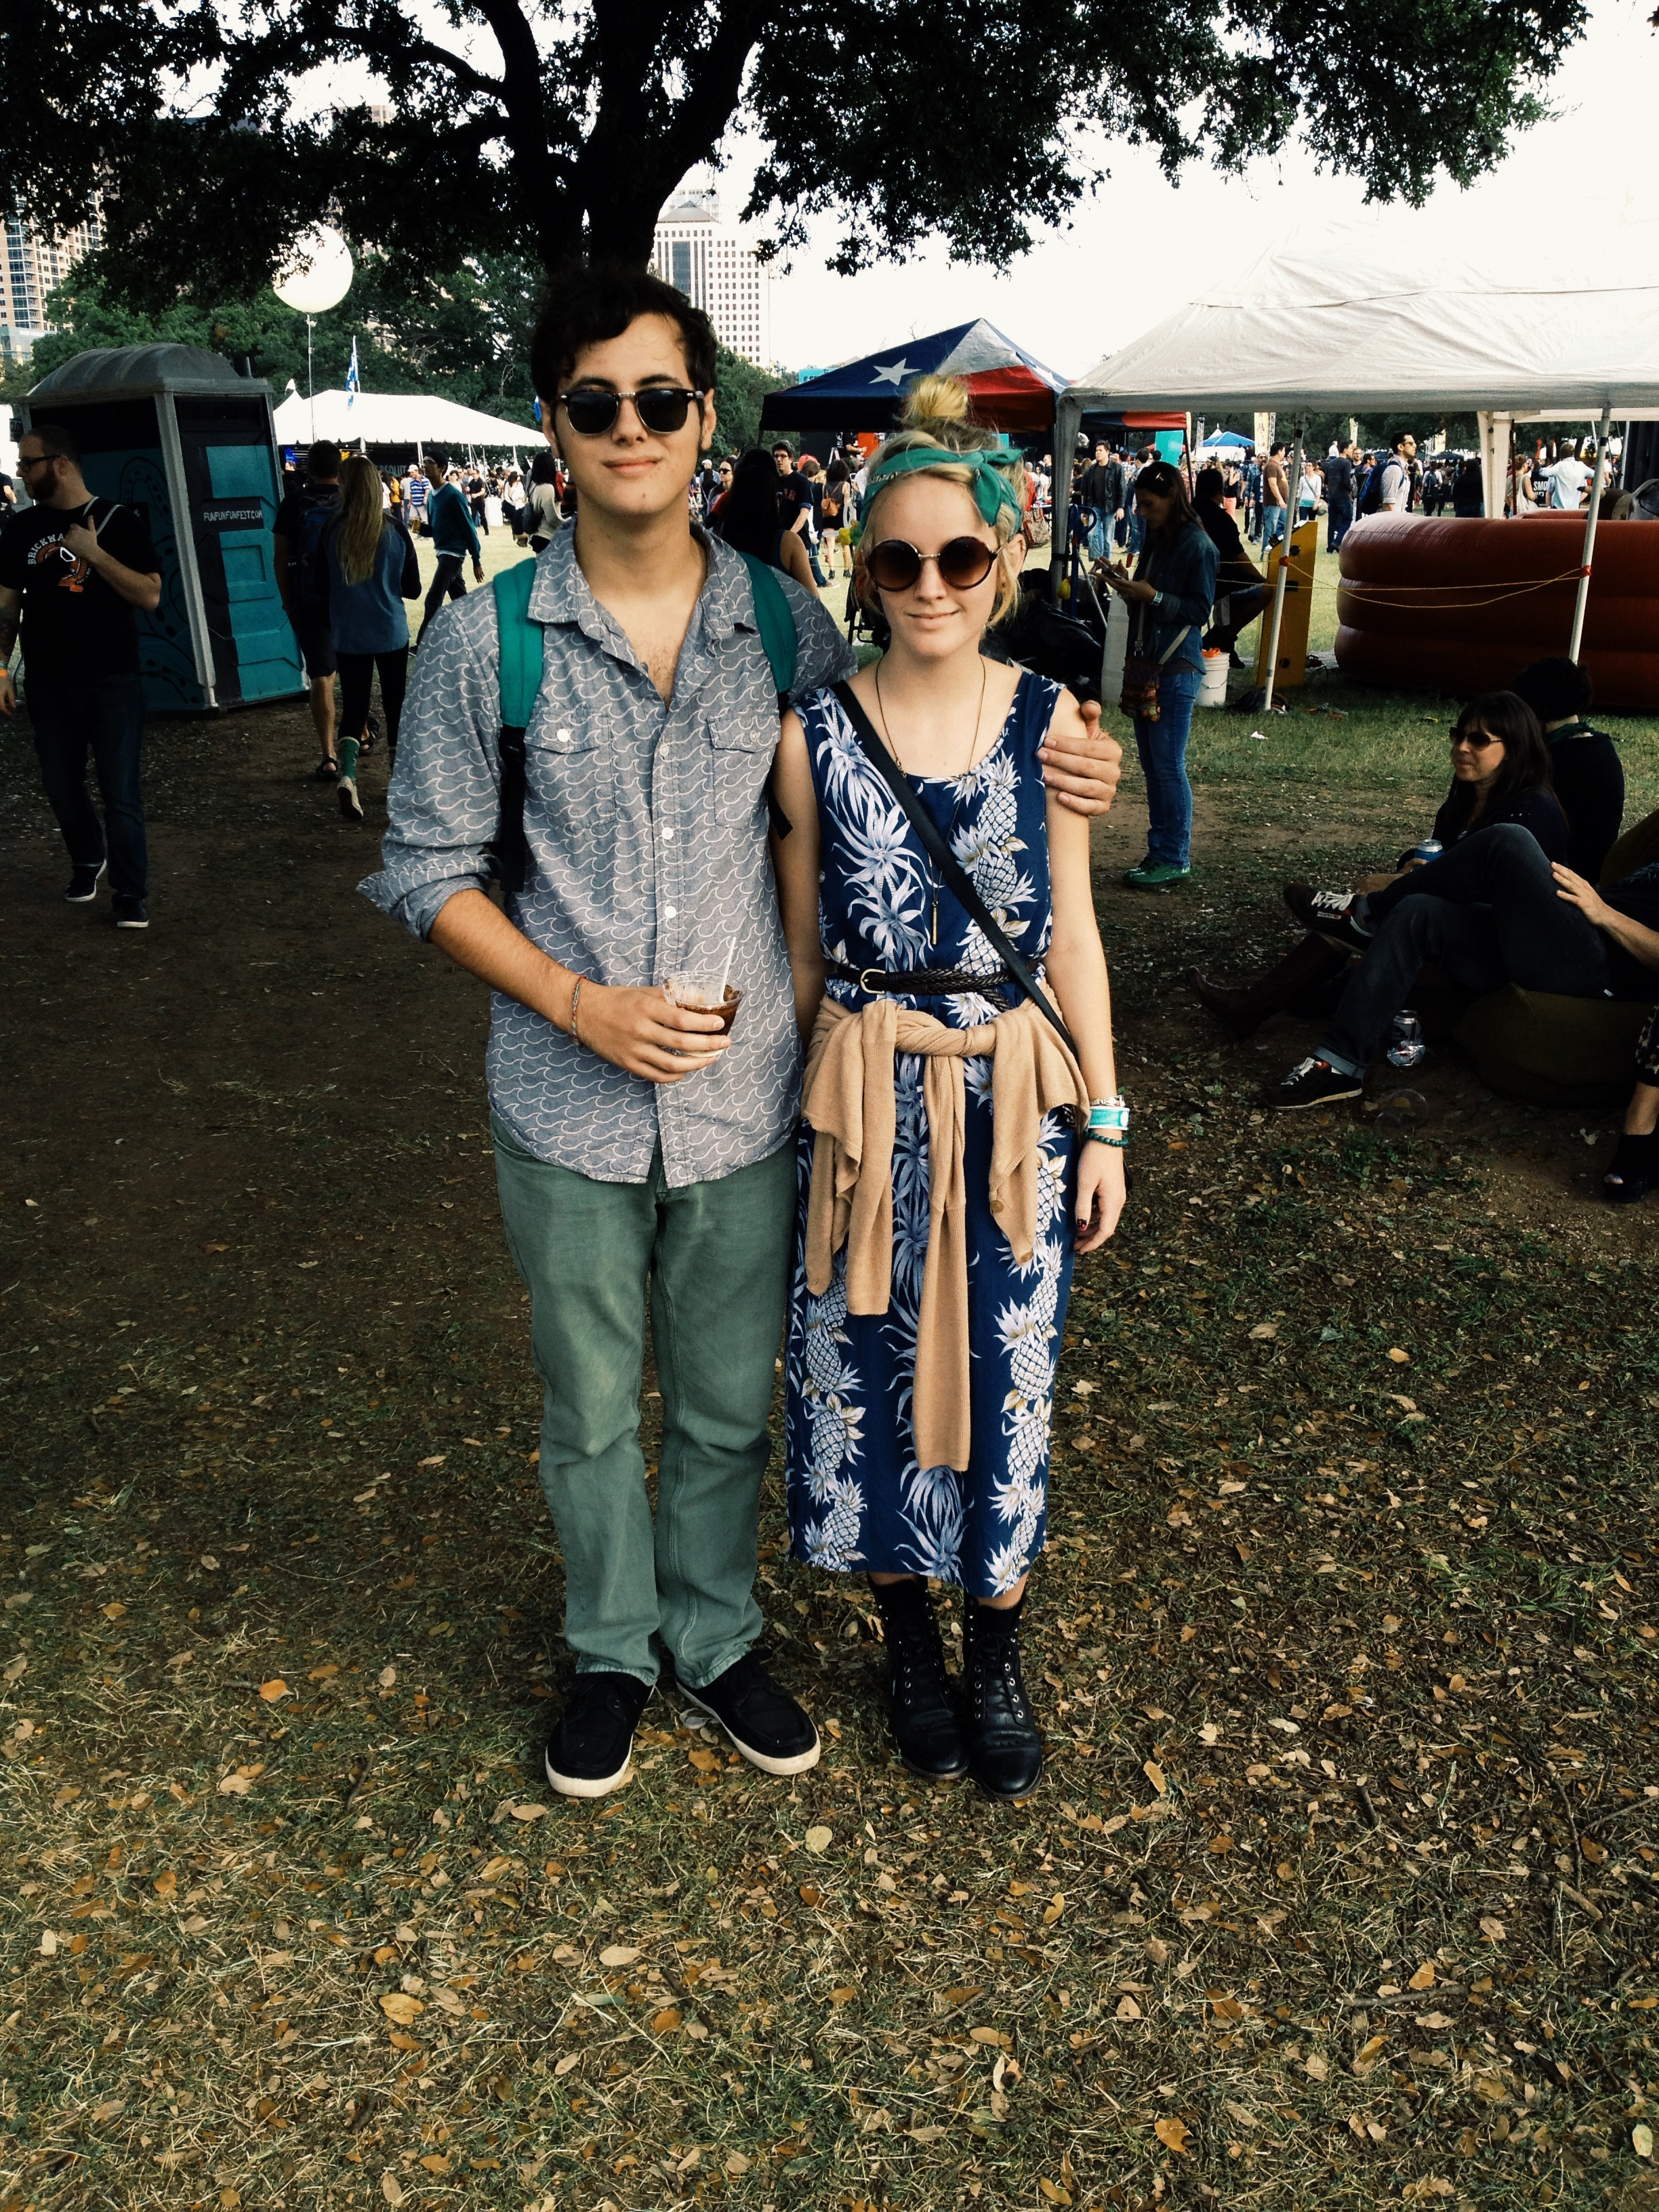 @__birdbones__ and her boy @cudsmack epitomize a festival couple in mismatched, simple separates.